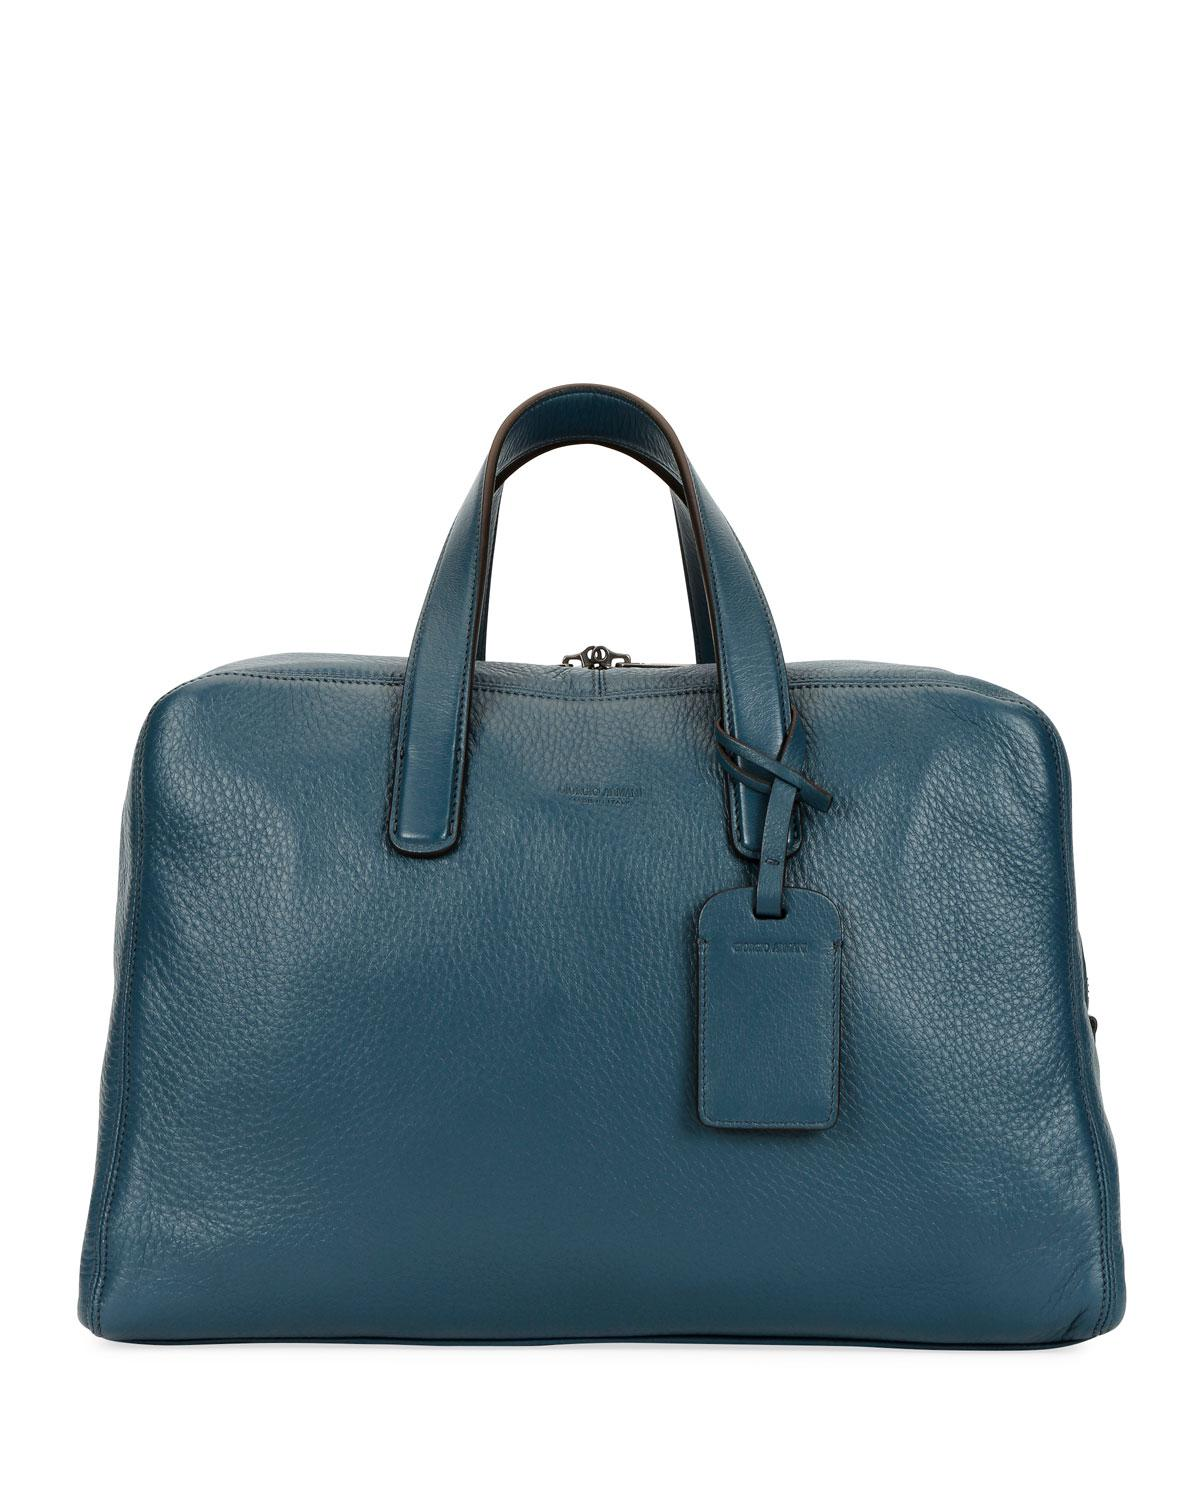 297901fae1f2 Lyst - Giorgio Armani Men s Deer Leather Carryall Duffel Bag in Blue ...